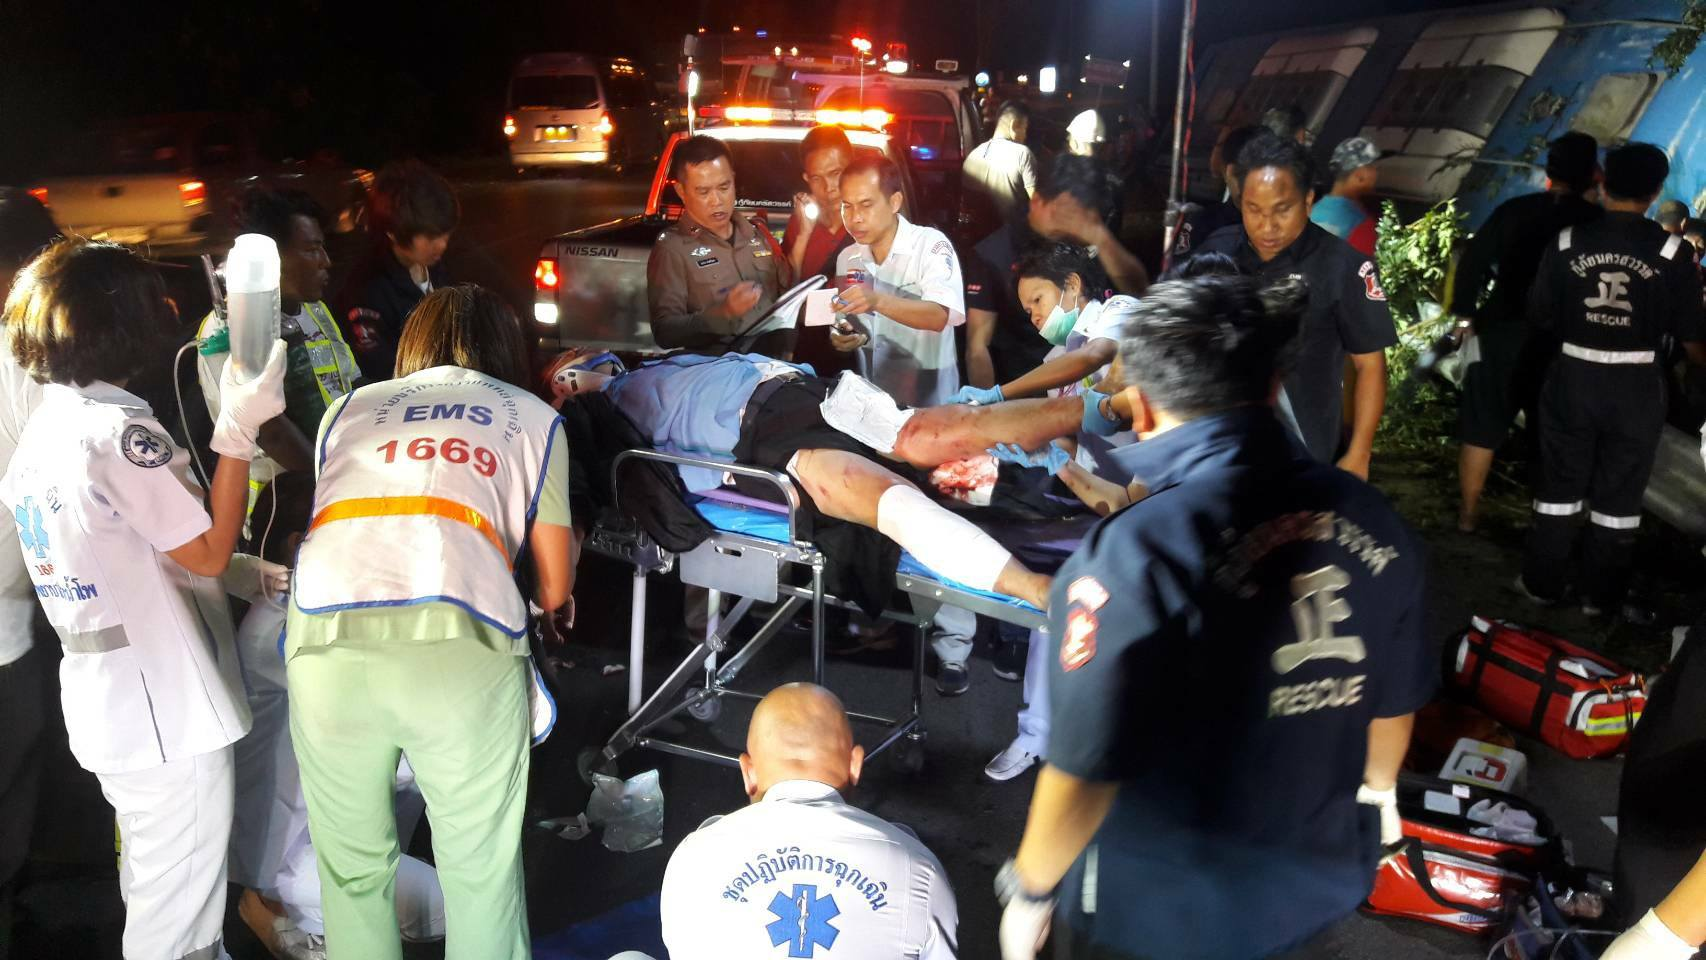 2 killed, 30 injured in Nakhon Sawan bus accident | The Thaiger